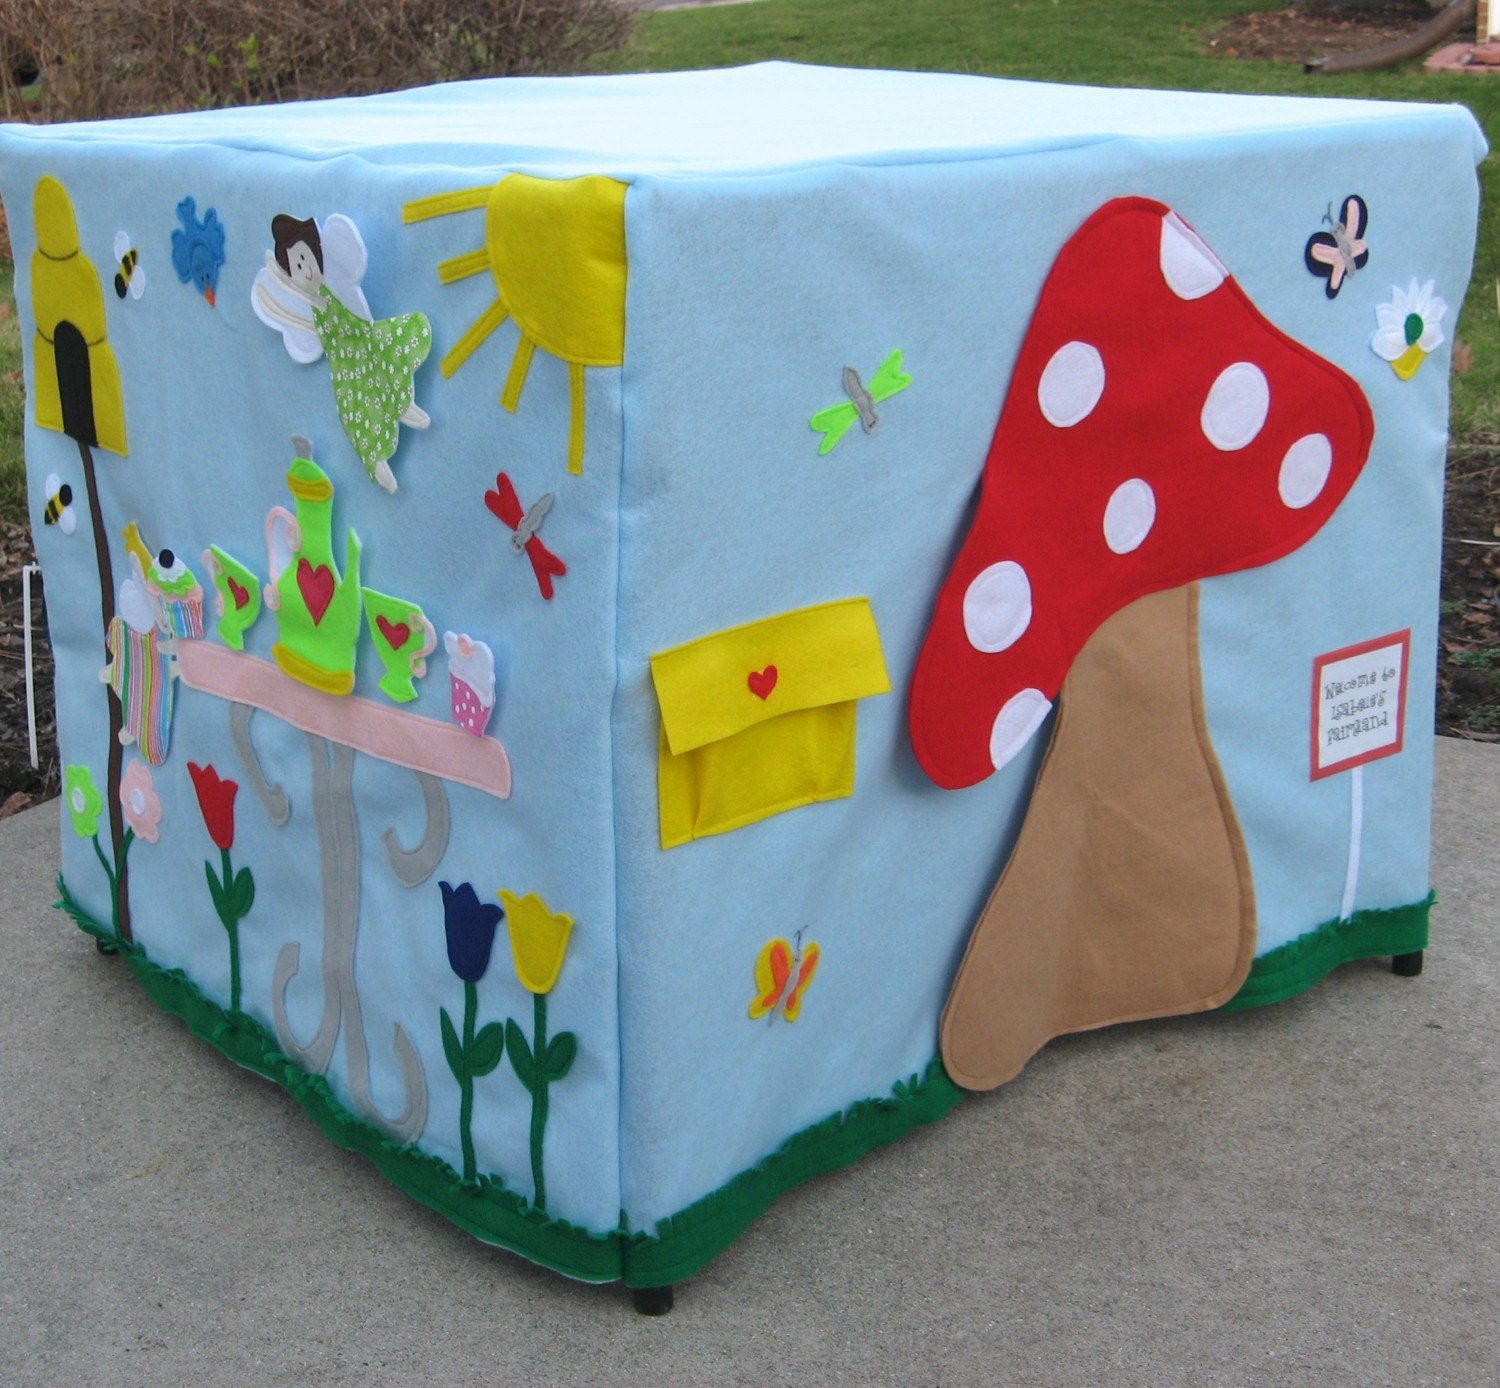 The Fairy's Tea Party, Card Table Playhouse, Personalized, Custom Order